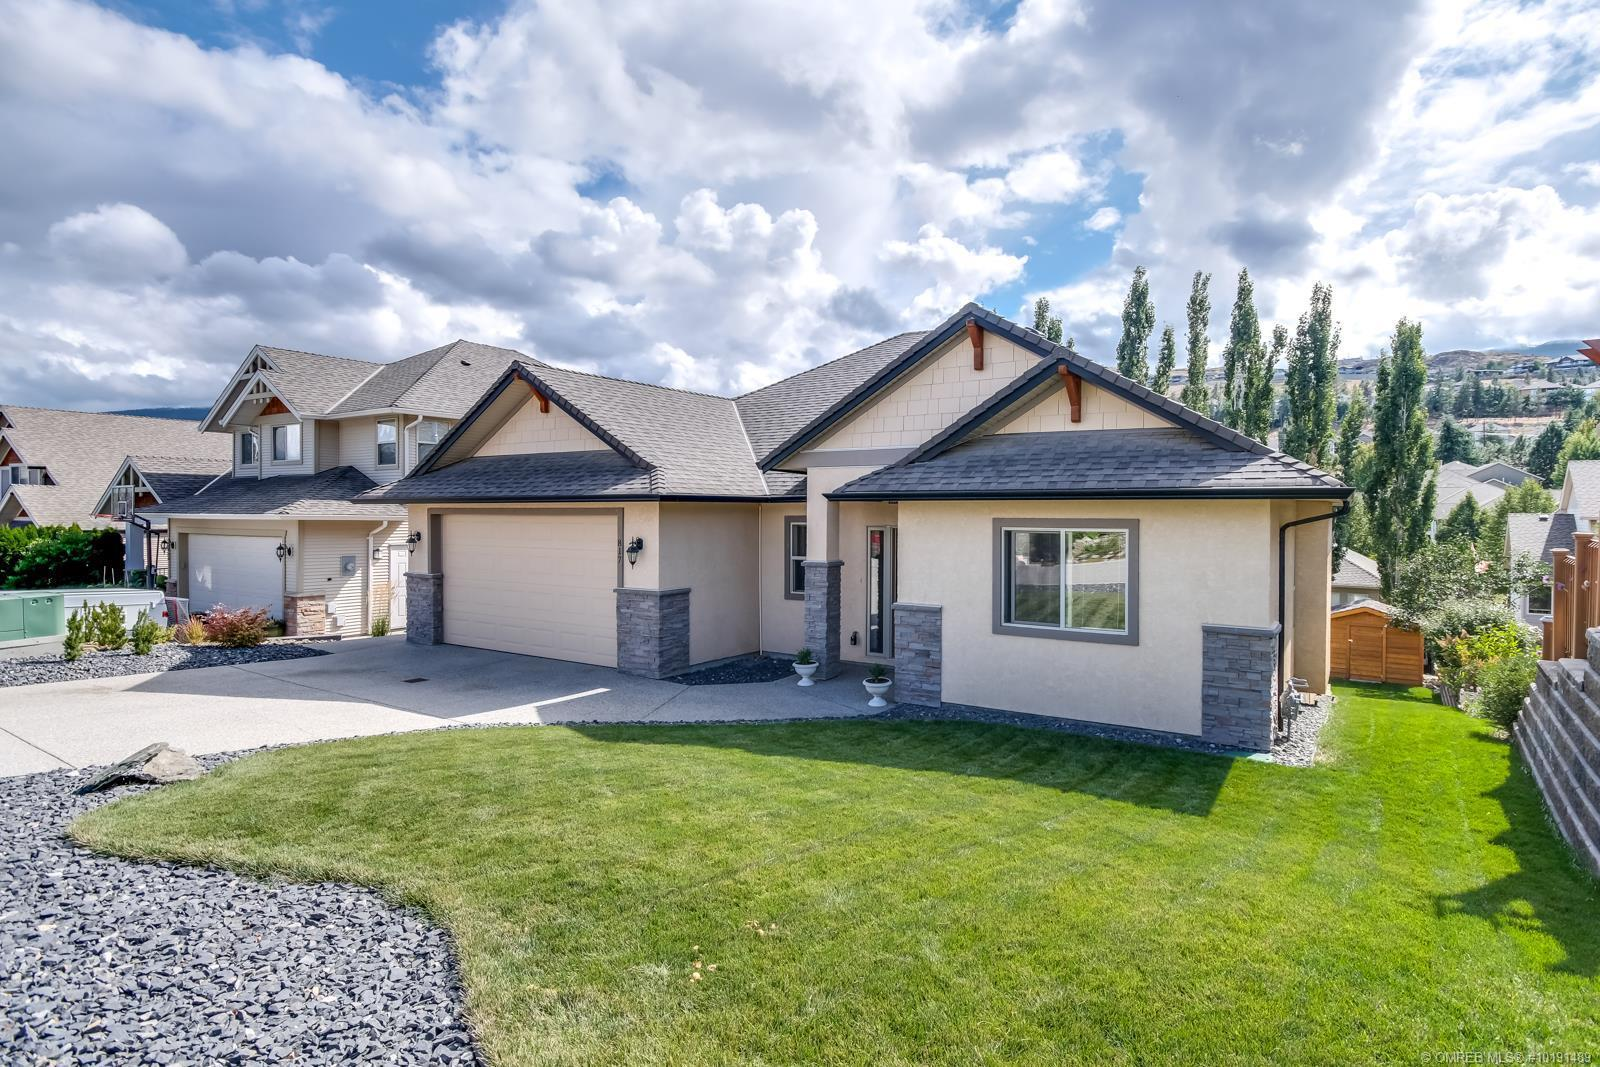 Removed: 817 Breeze Place, Kelowna, BC - Removed on 2019-09-27 06:00:04